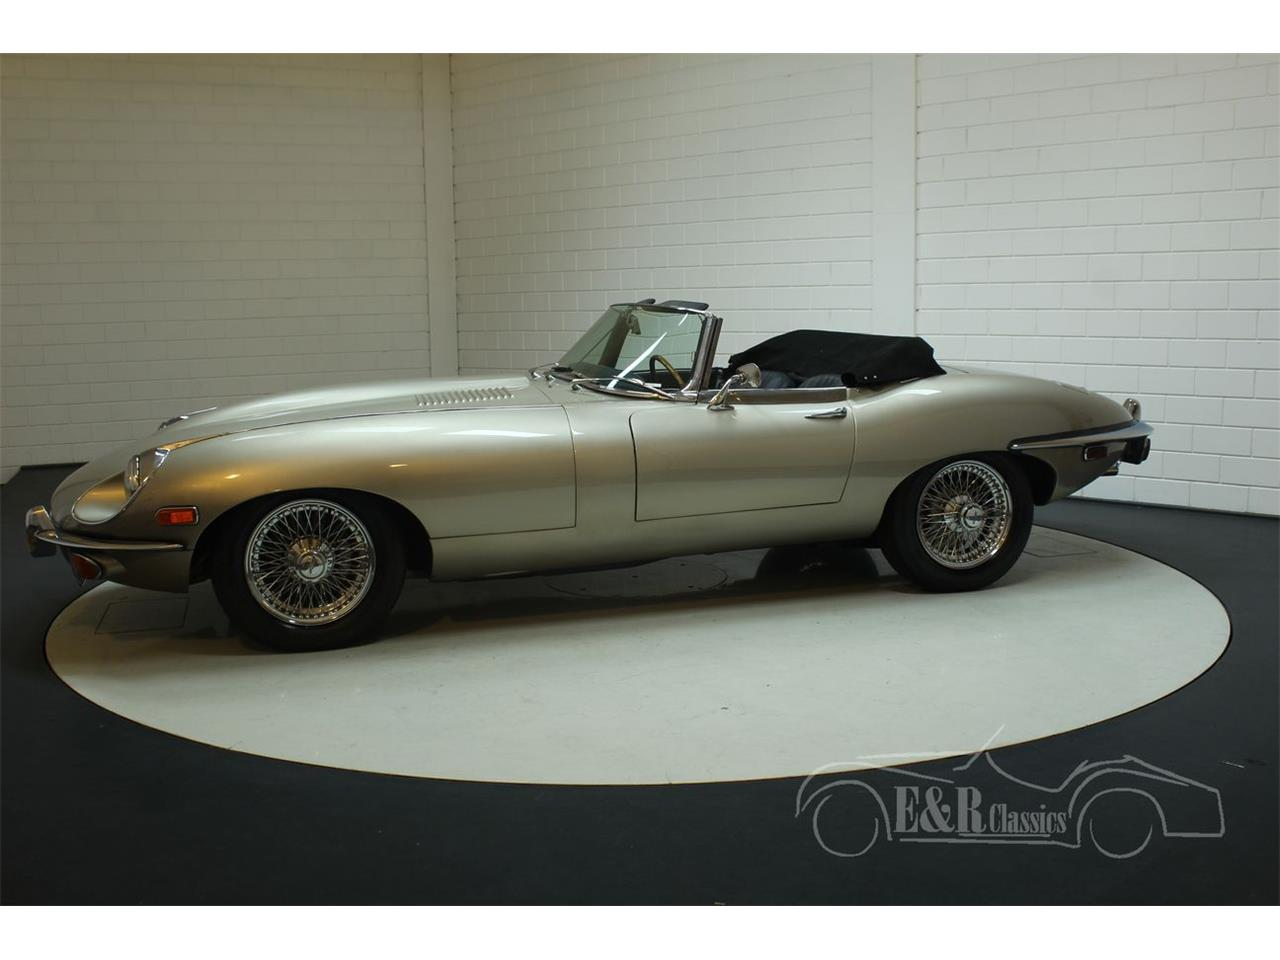 Large Picture of 1970 Jaguar E-Type located in - Keine Angabe - Offered by E & R Classics - PH40